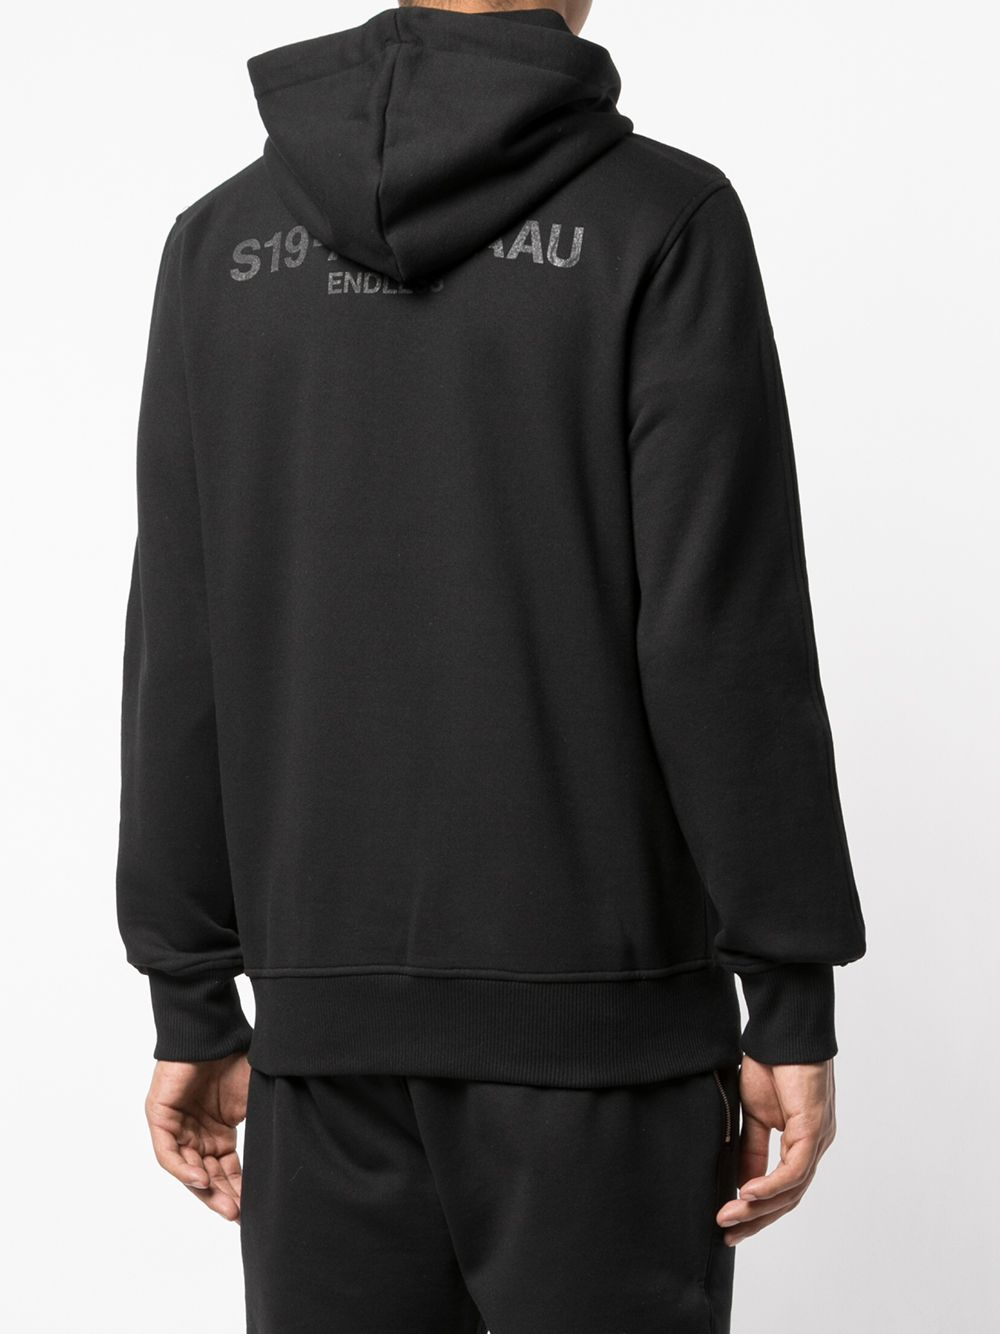 1017 ALYX 9SM UNISEX LOGO COLLECTION HOODIE